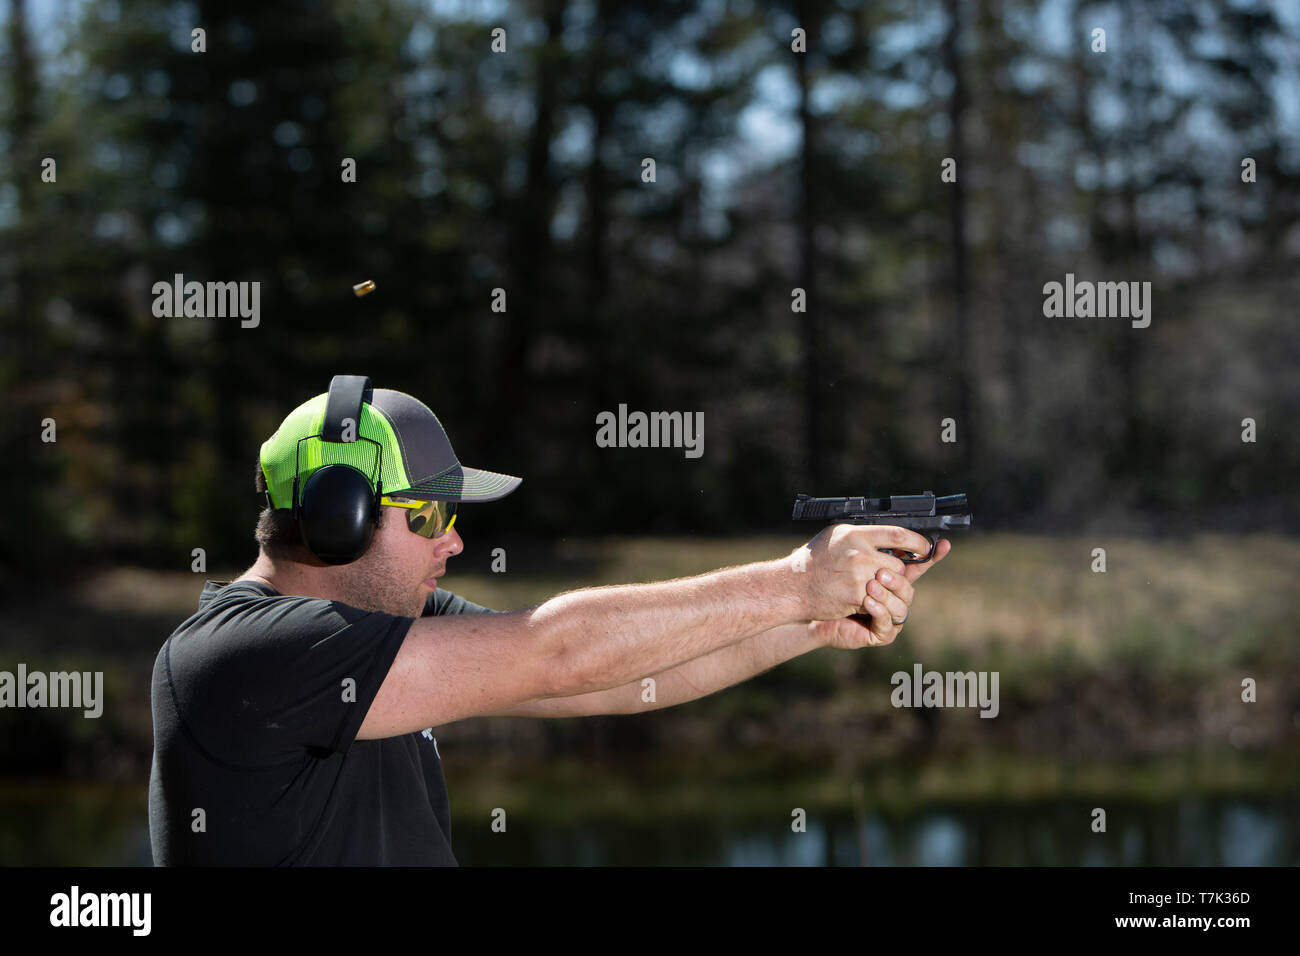 A man shooting a handgun with the ejected shell in the air. - Stock Image